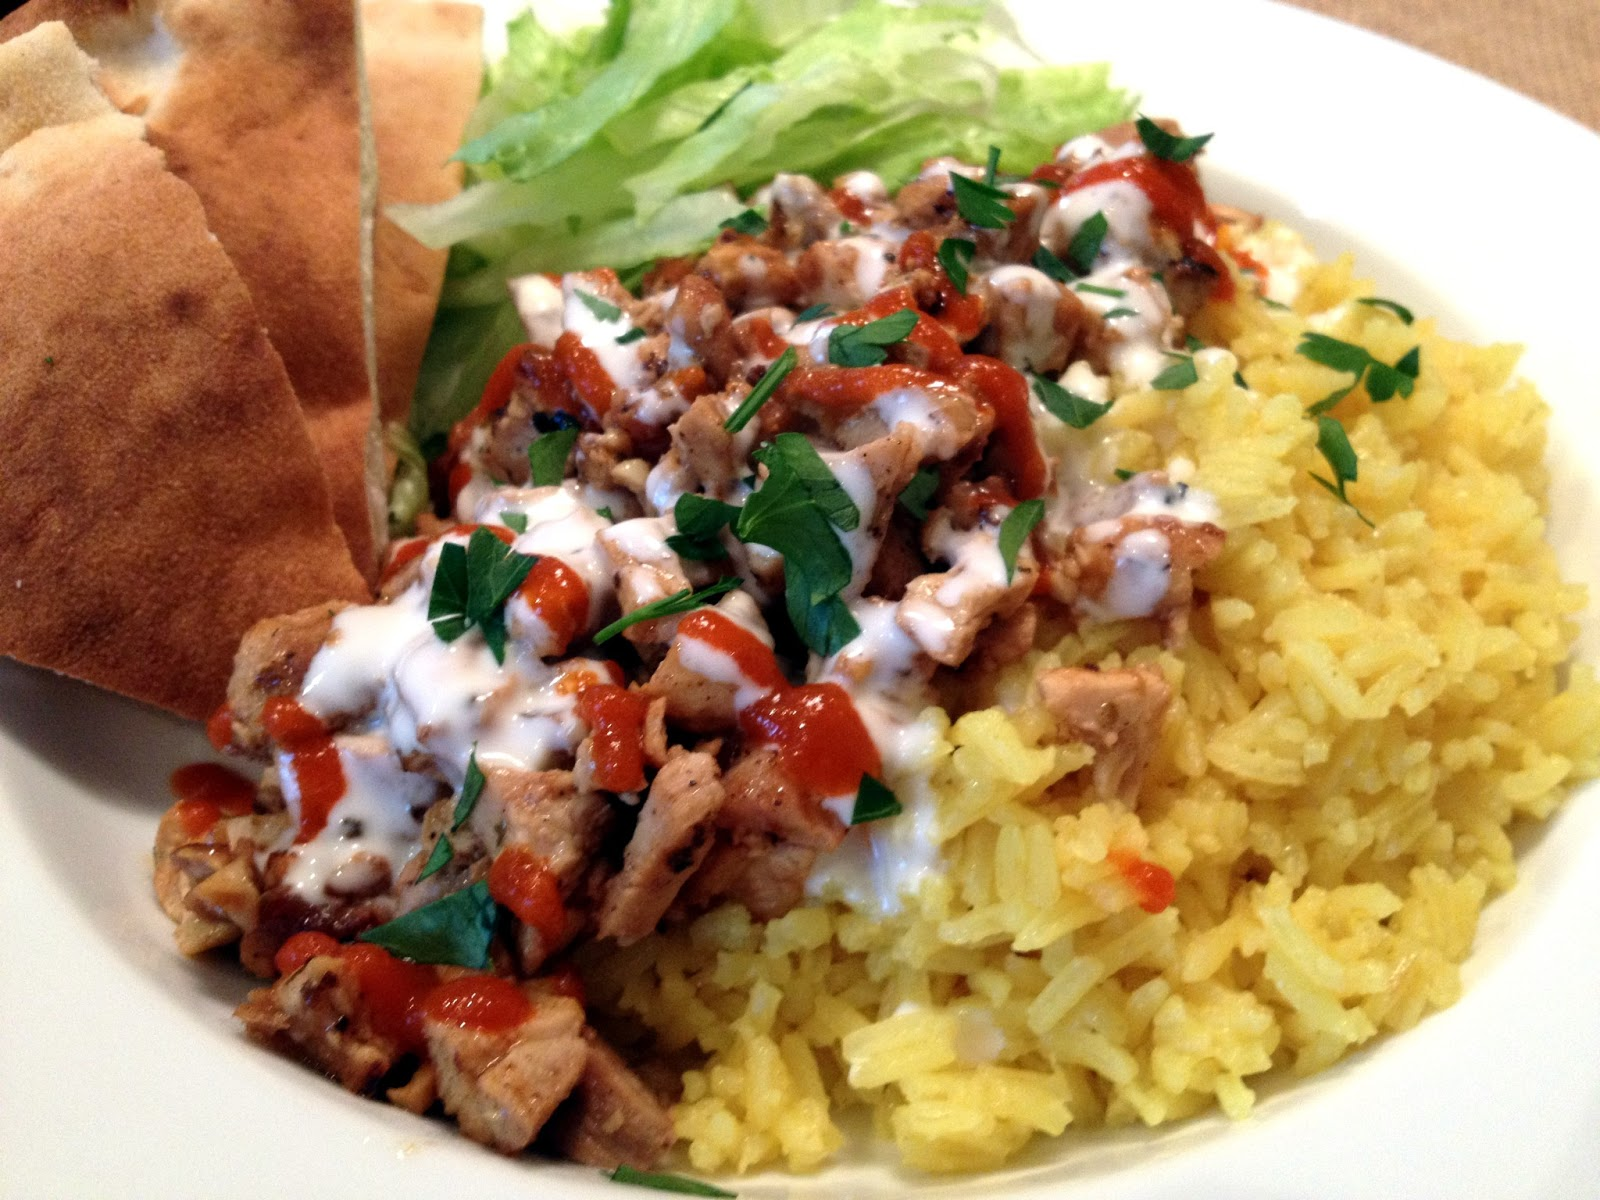 GRILLED CHICKEN BOWL Image